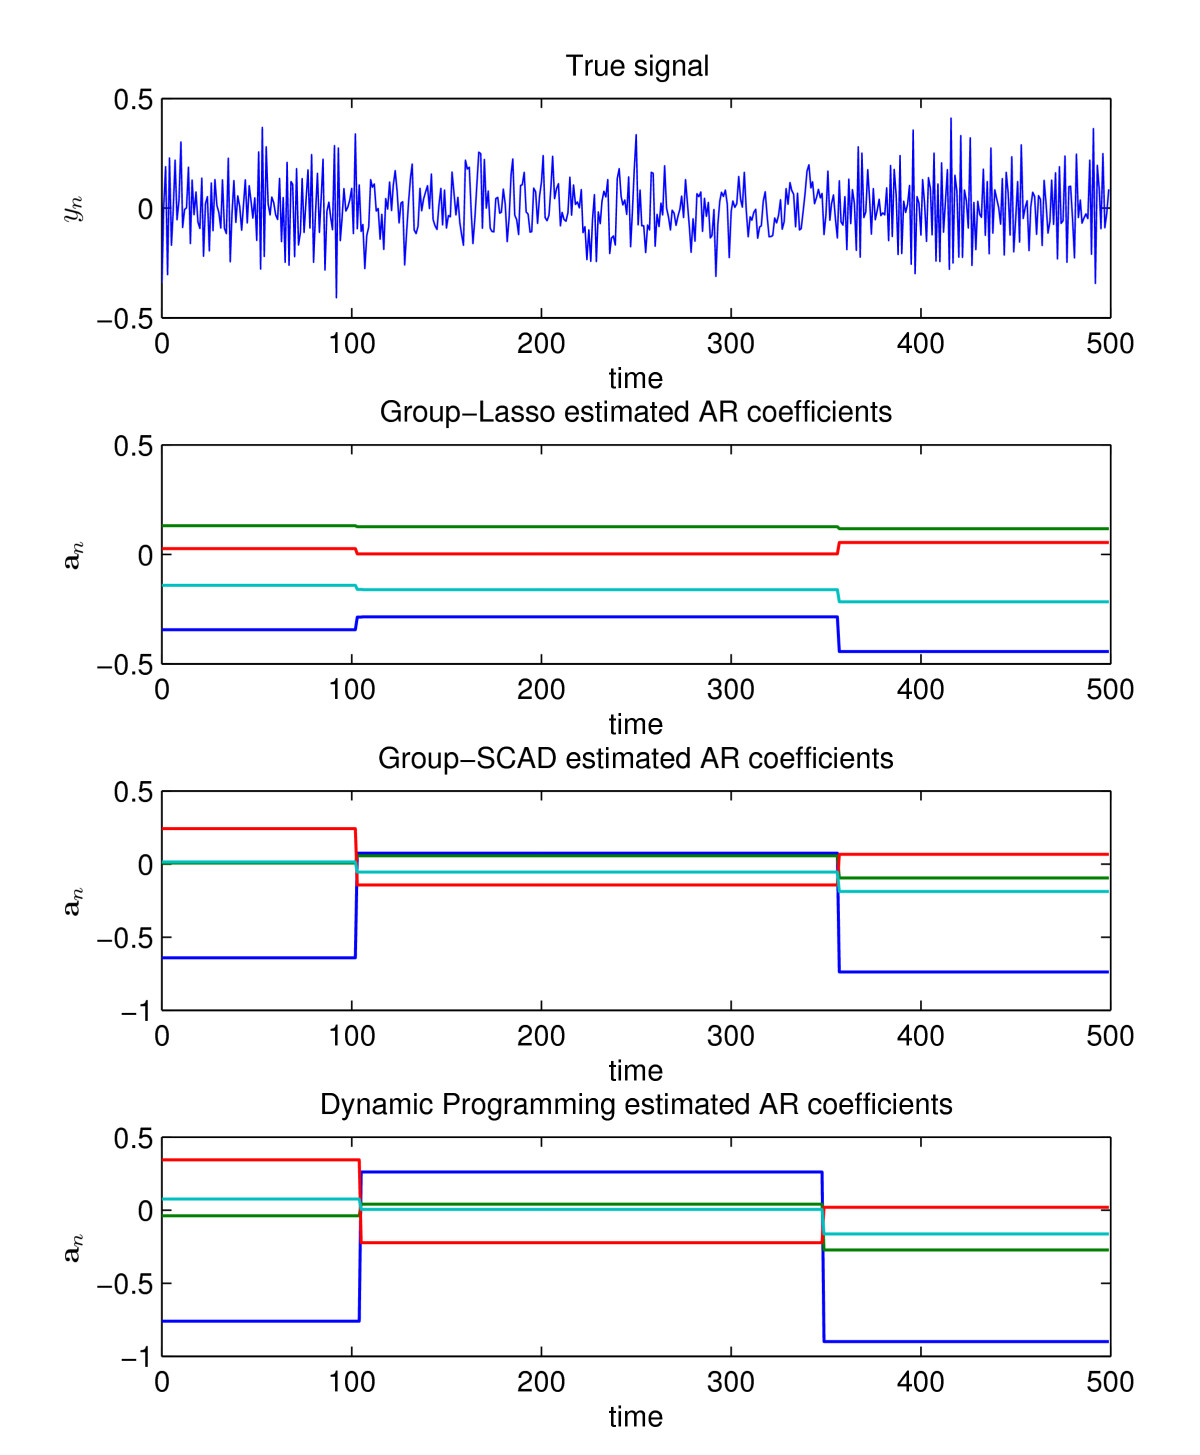 http://static-content.springer.com/image/art%3A10.1186%2F1687-6180-2012-70/MediaObjects/13634_2011_Article_224_Fig4_HTML.jpg